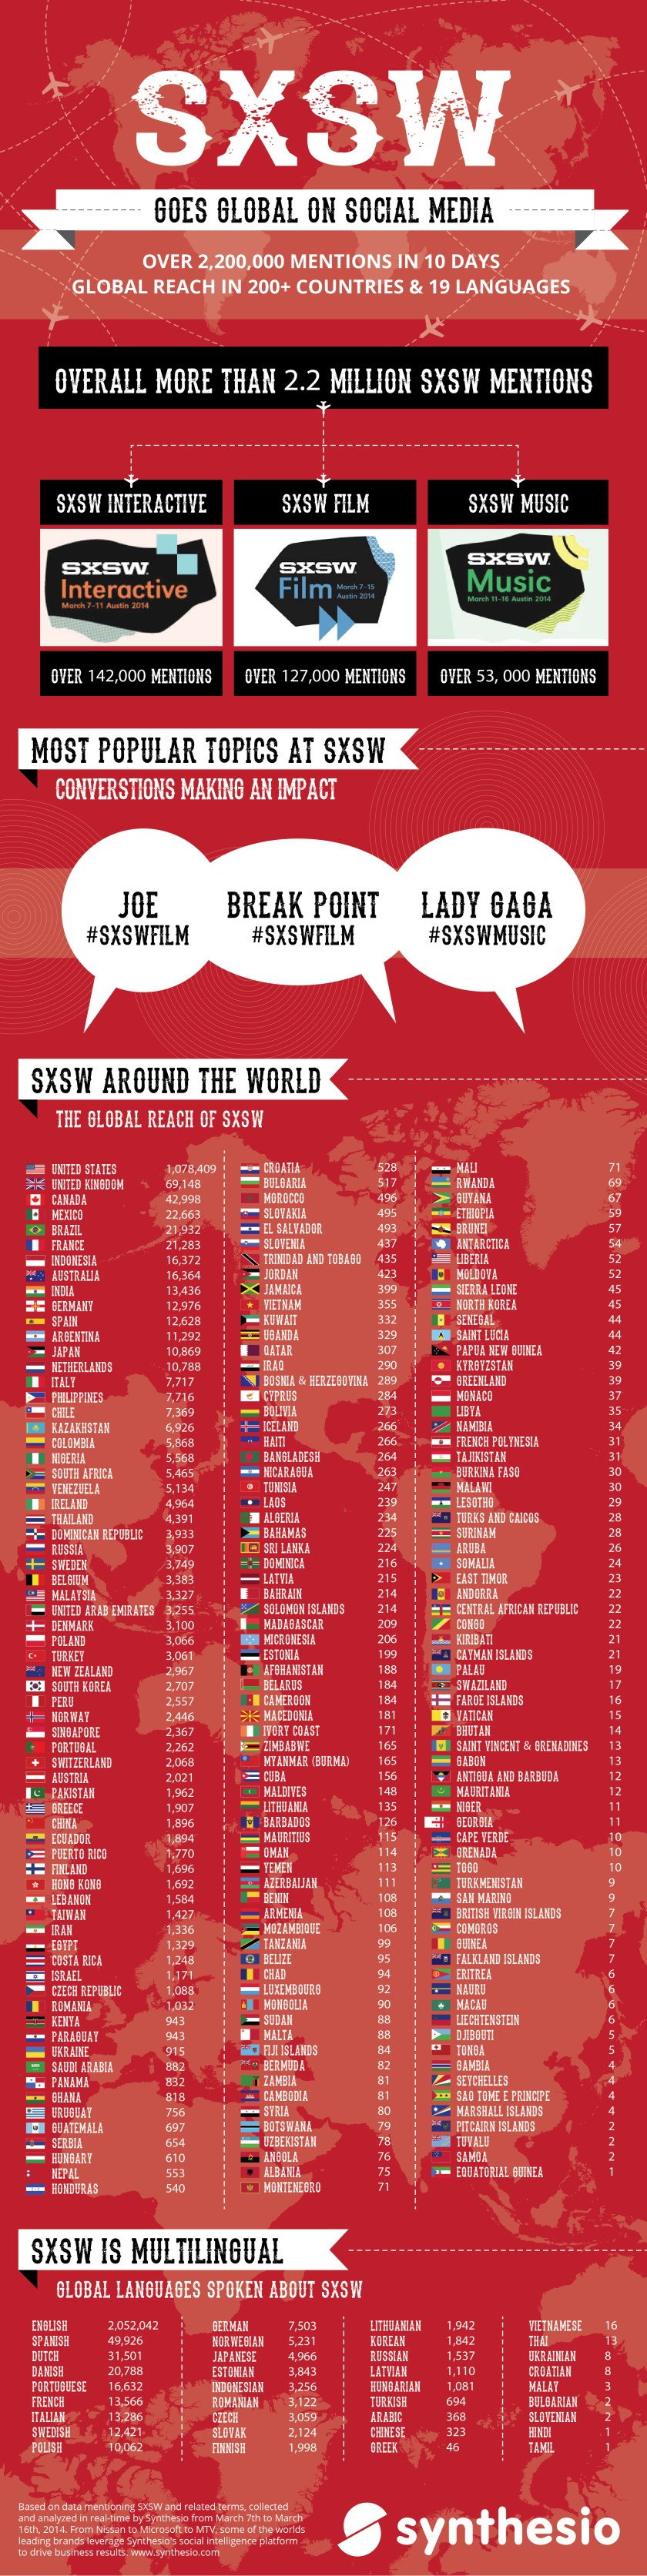 SXSW Goes Global on Social Media - infographic